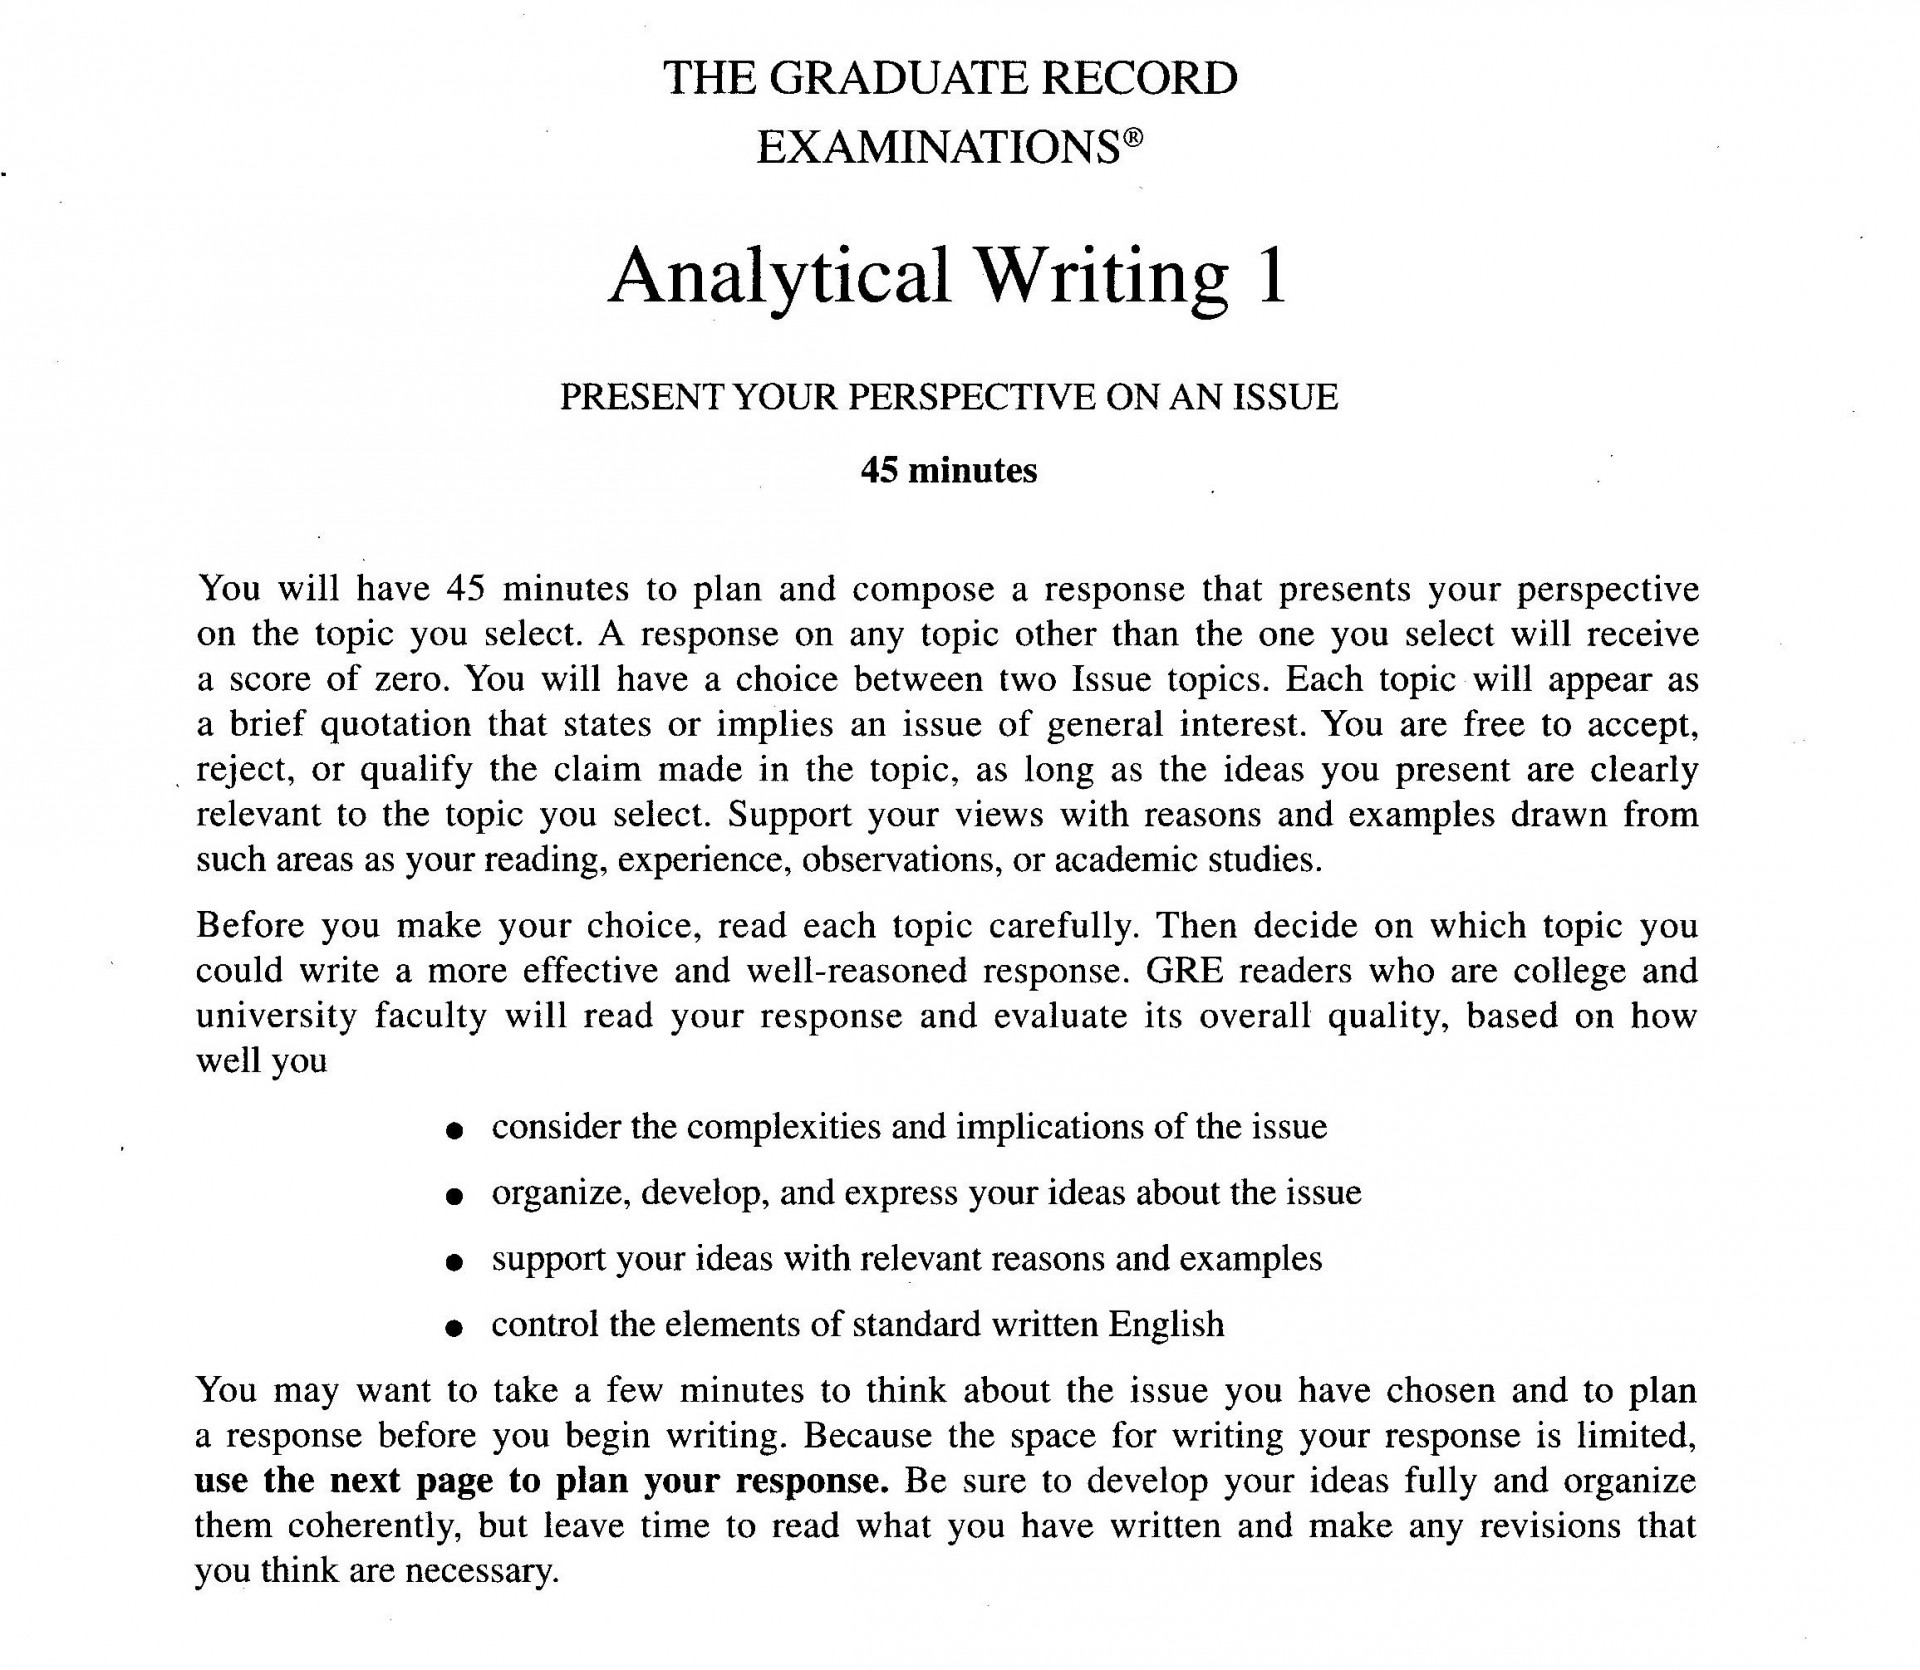 004 Gre Issue Essay Template Lovely Guide To Writing Basic Analytical Essayss Of For Stunning Examples Pdf Sample 1920